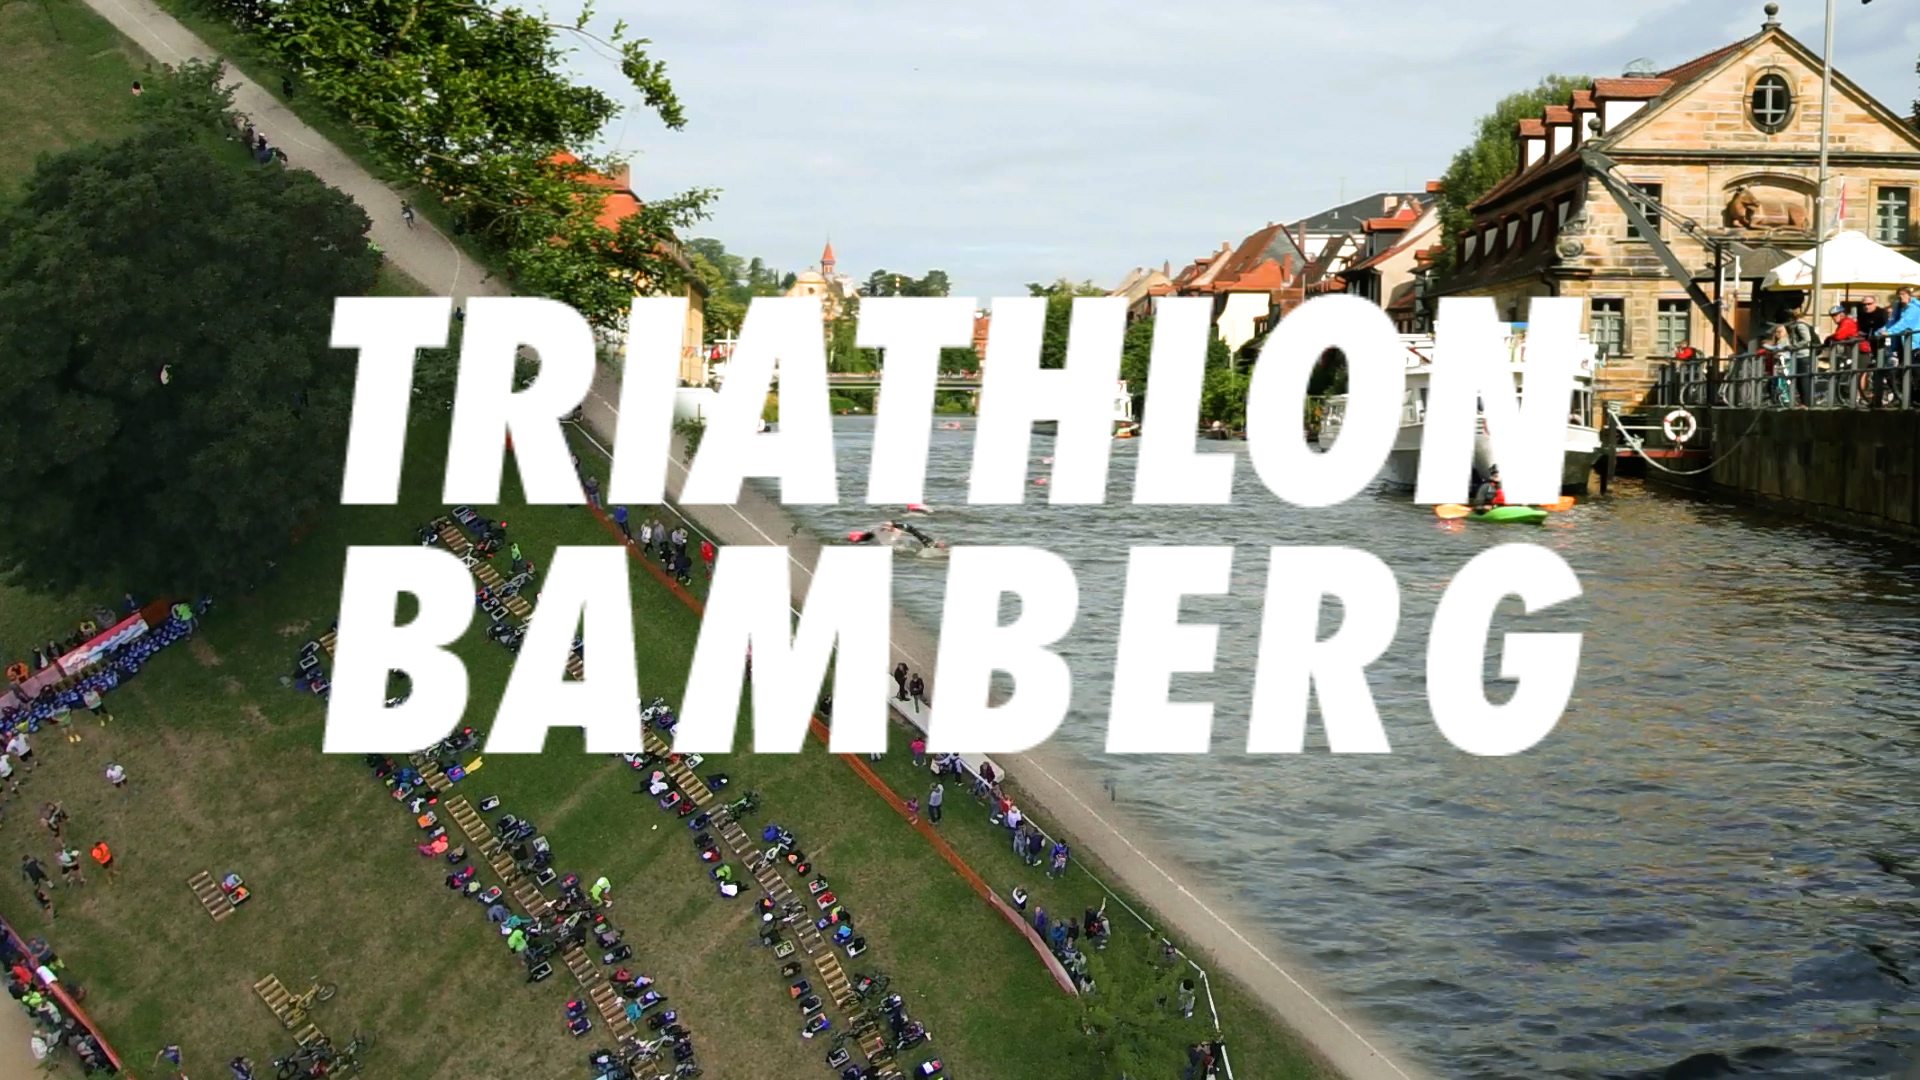 Triathlon Bamberg Video Thumbnail